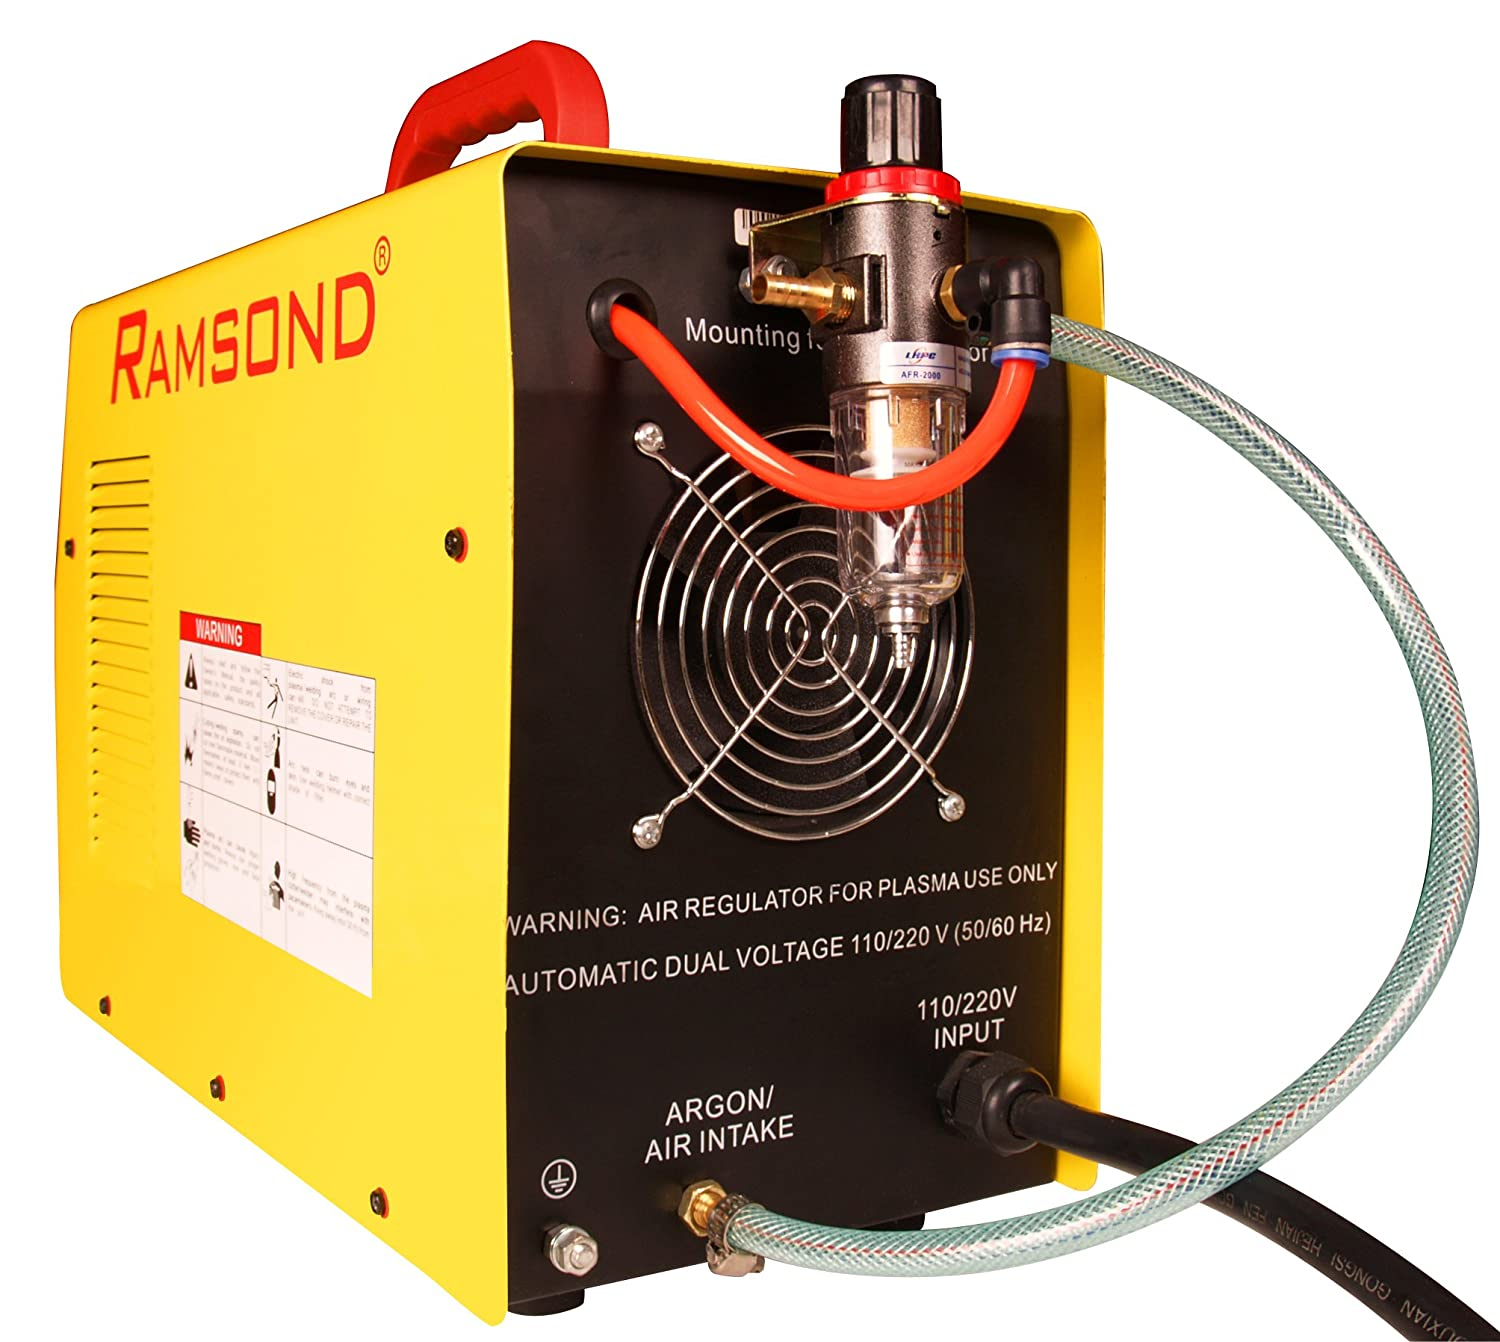 Ramsond Ct 520dy 3 In 1 Multifunction Digital Inverter Plasma Cutter Welding Pcb Board Cutting Machine Circuit Industry Tig Welder Arc Mma Dual Voltage 110 220v Frequency 50 60hz Rebar